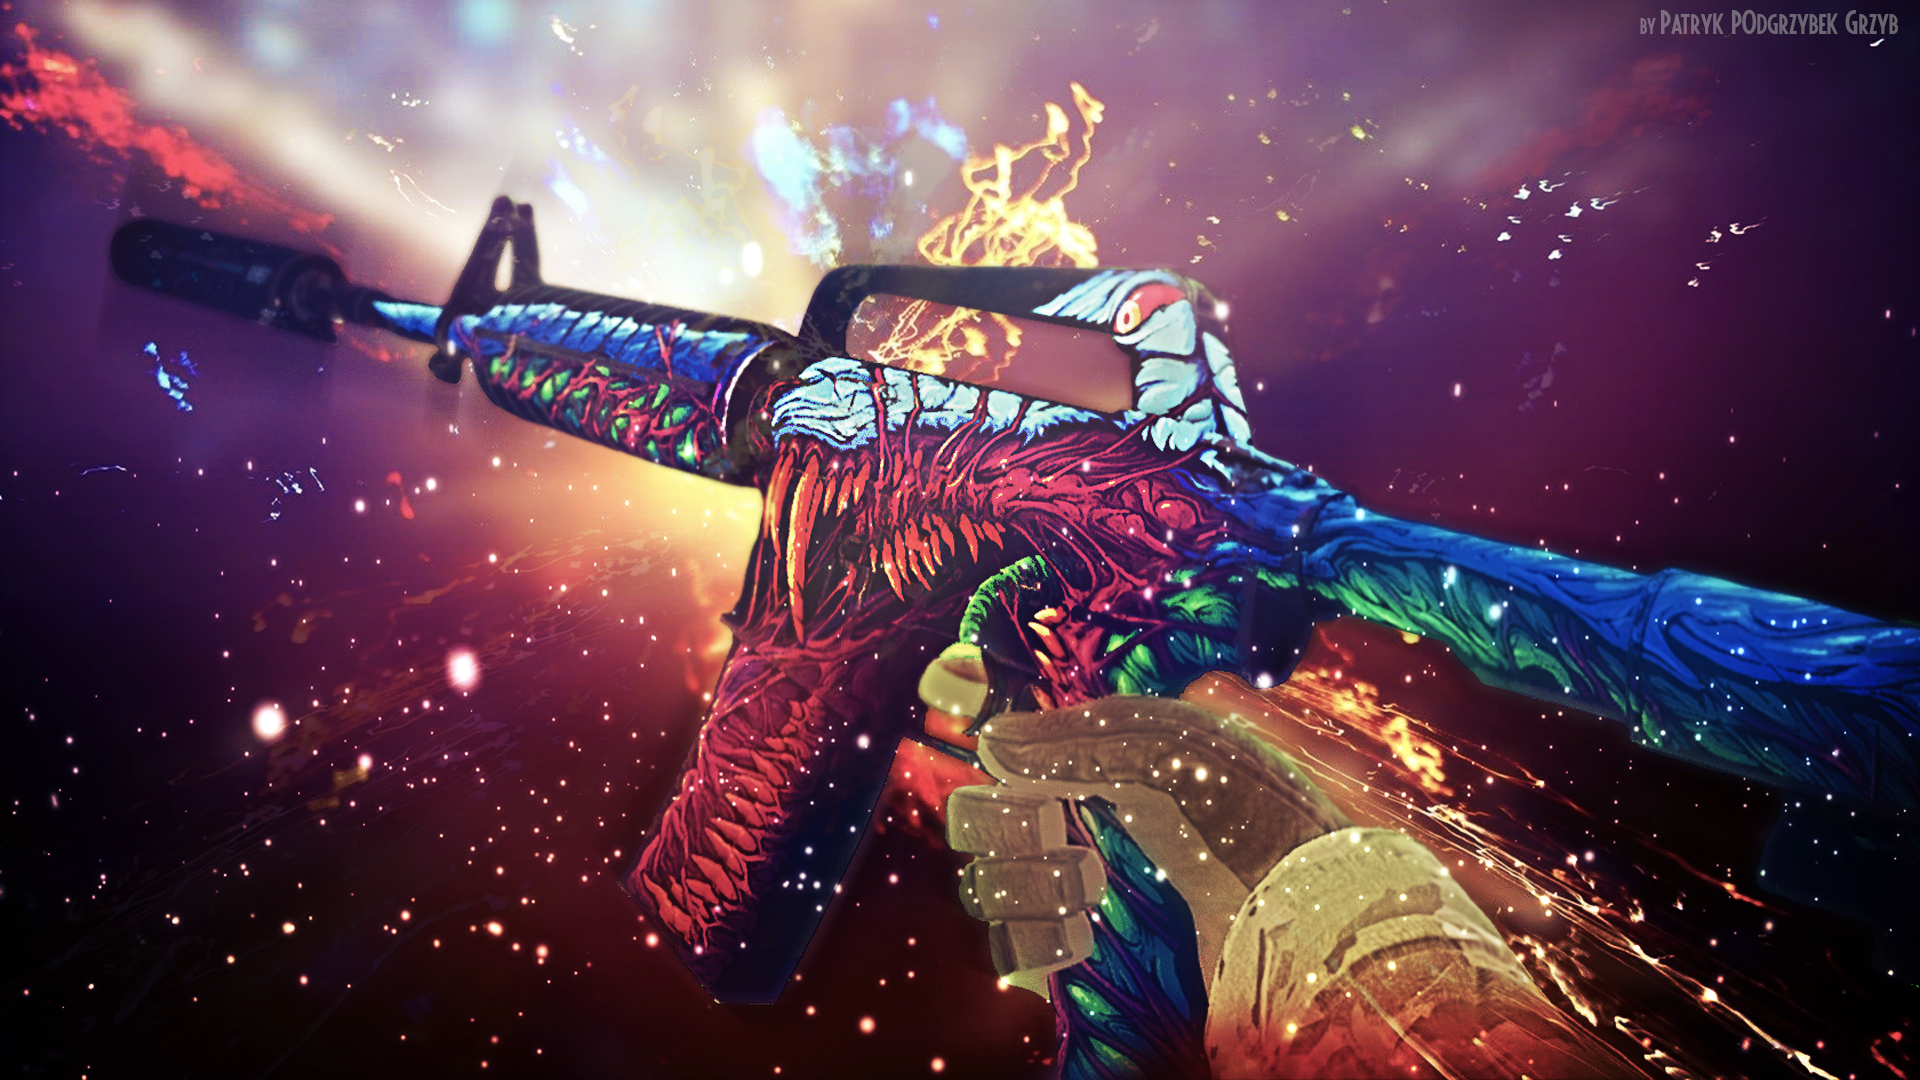 Steam Community M4a1 S Hyper Beast Wallpaper By